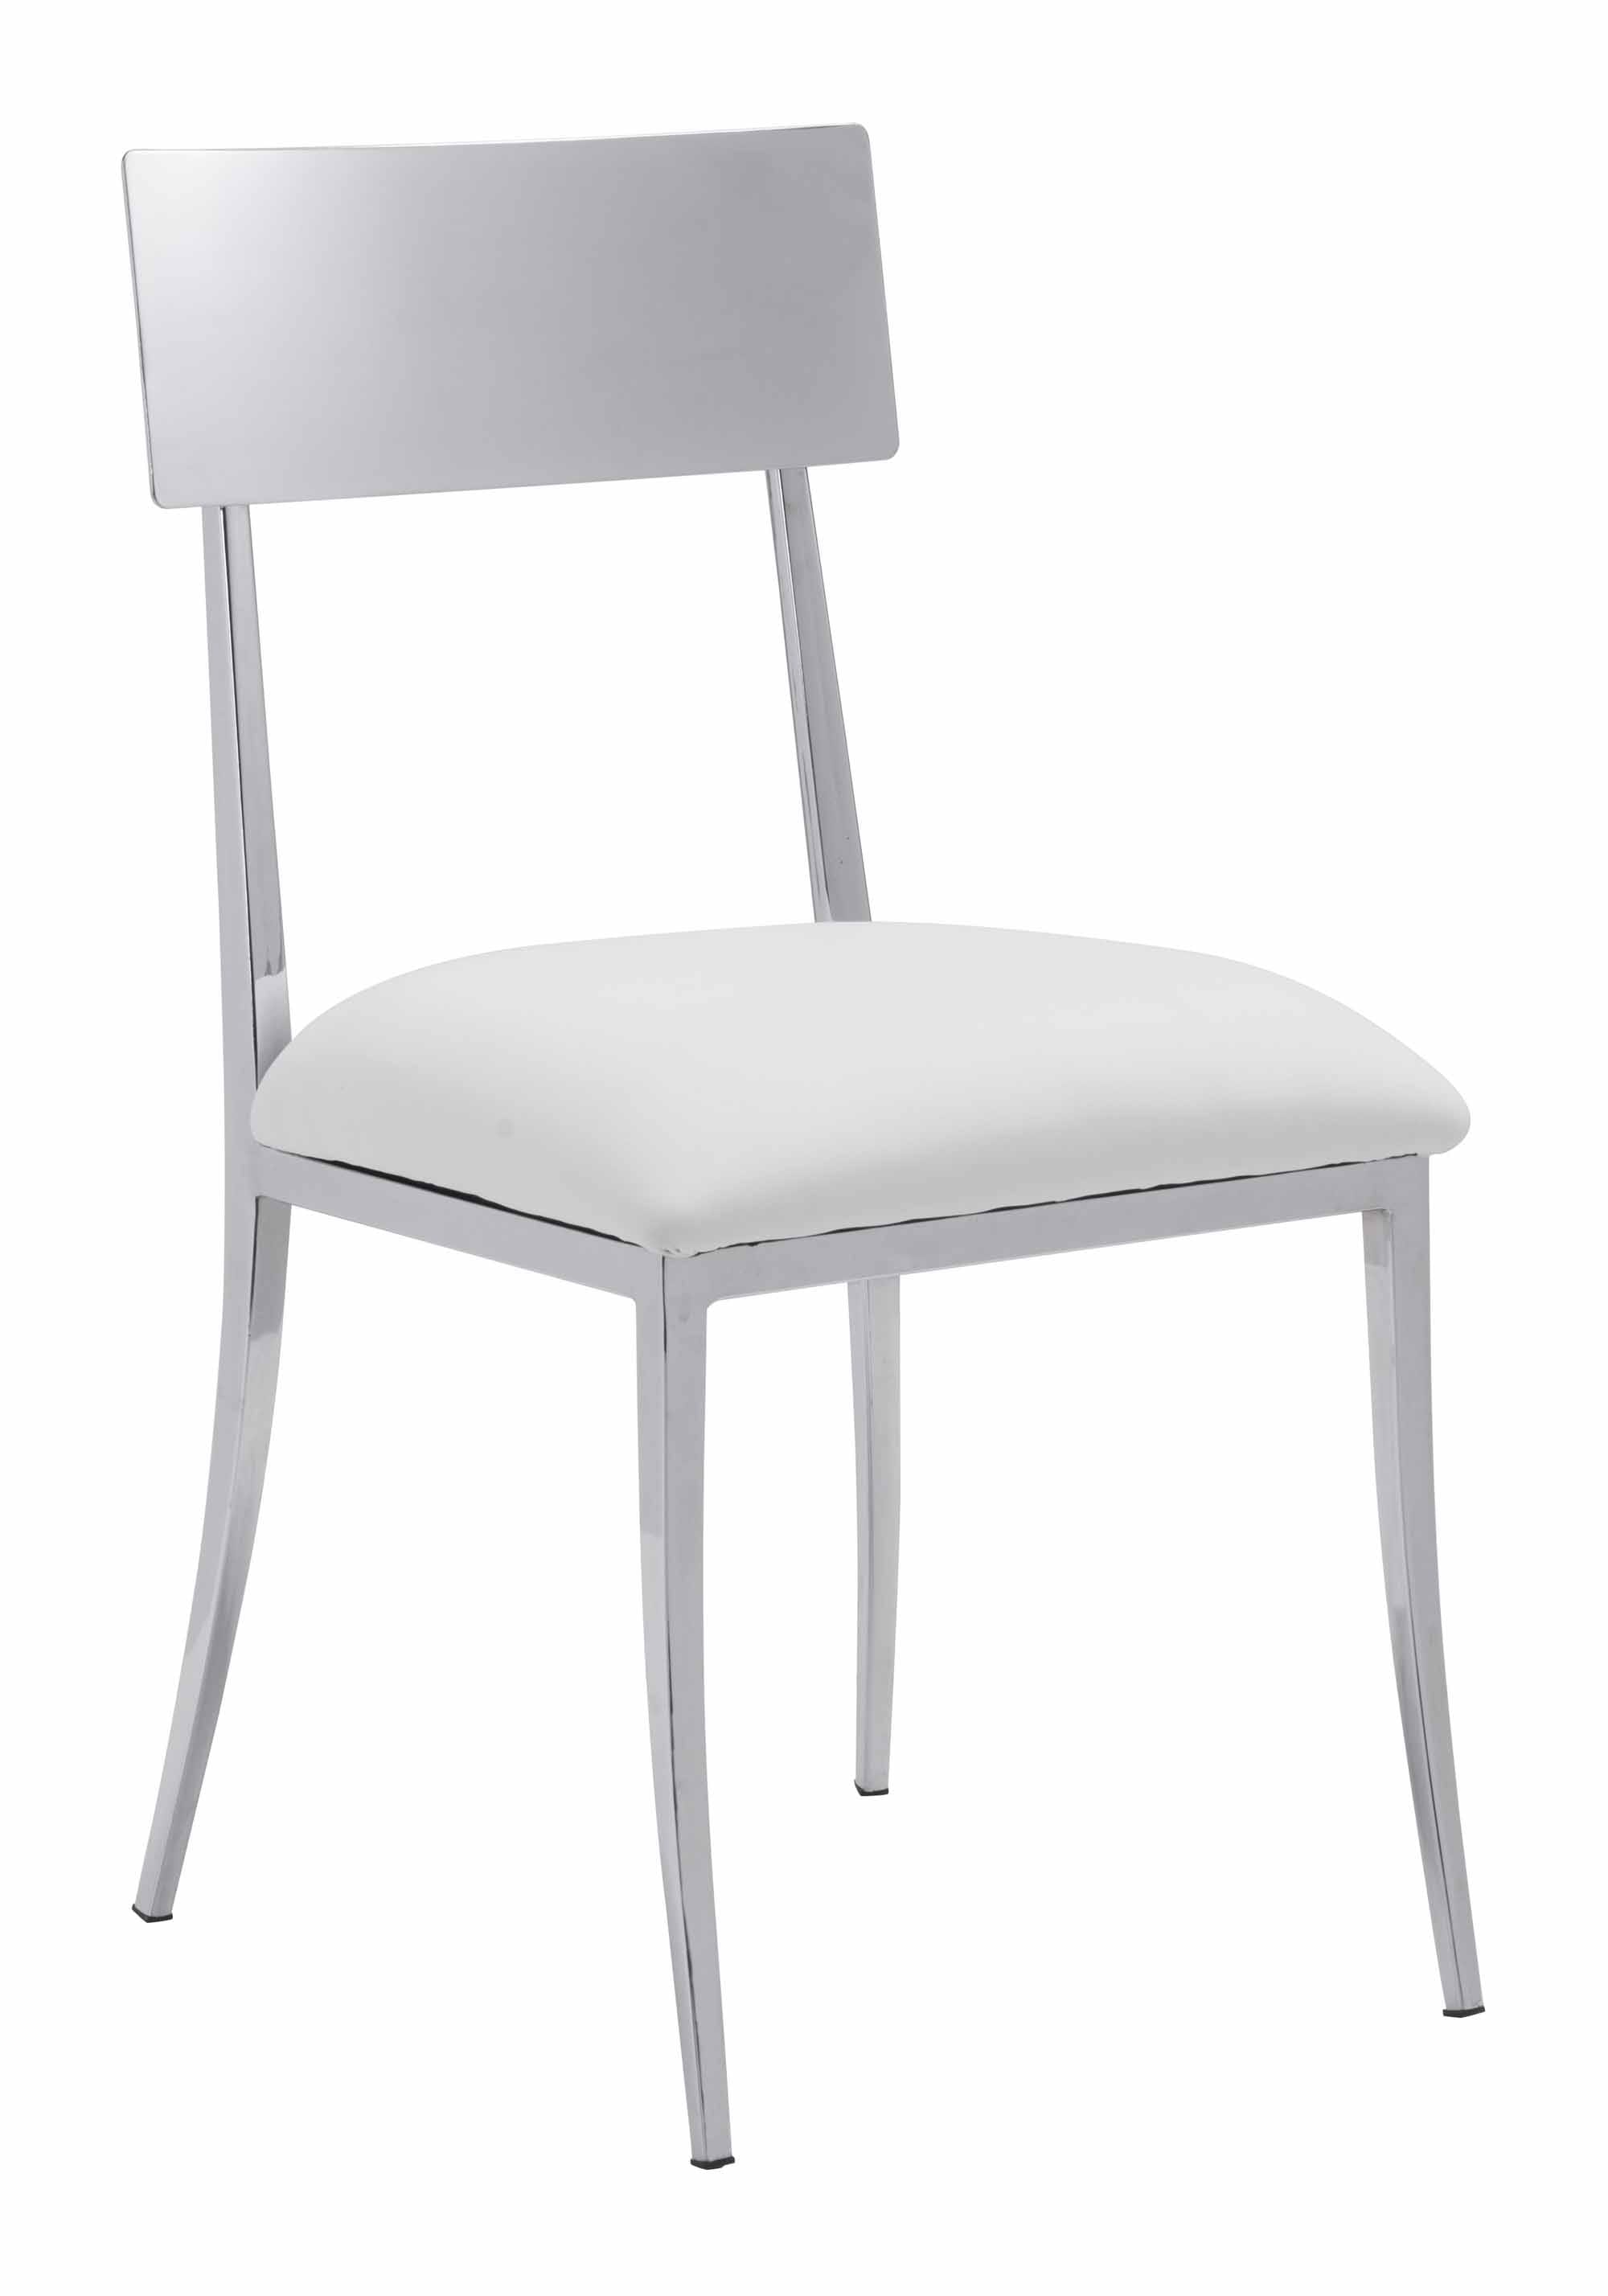 Brilliant Mach Dining Chair White Set Of 2 By Zuo Modern Andrewgaddart Wooden Chair Designs For Living Room Andrewgaddartcom